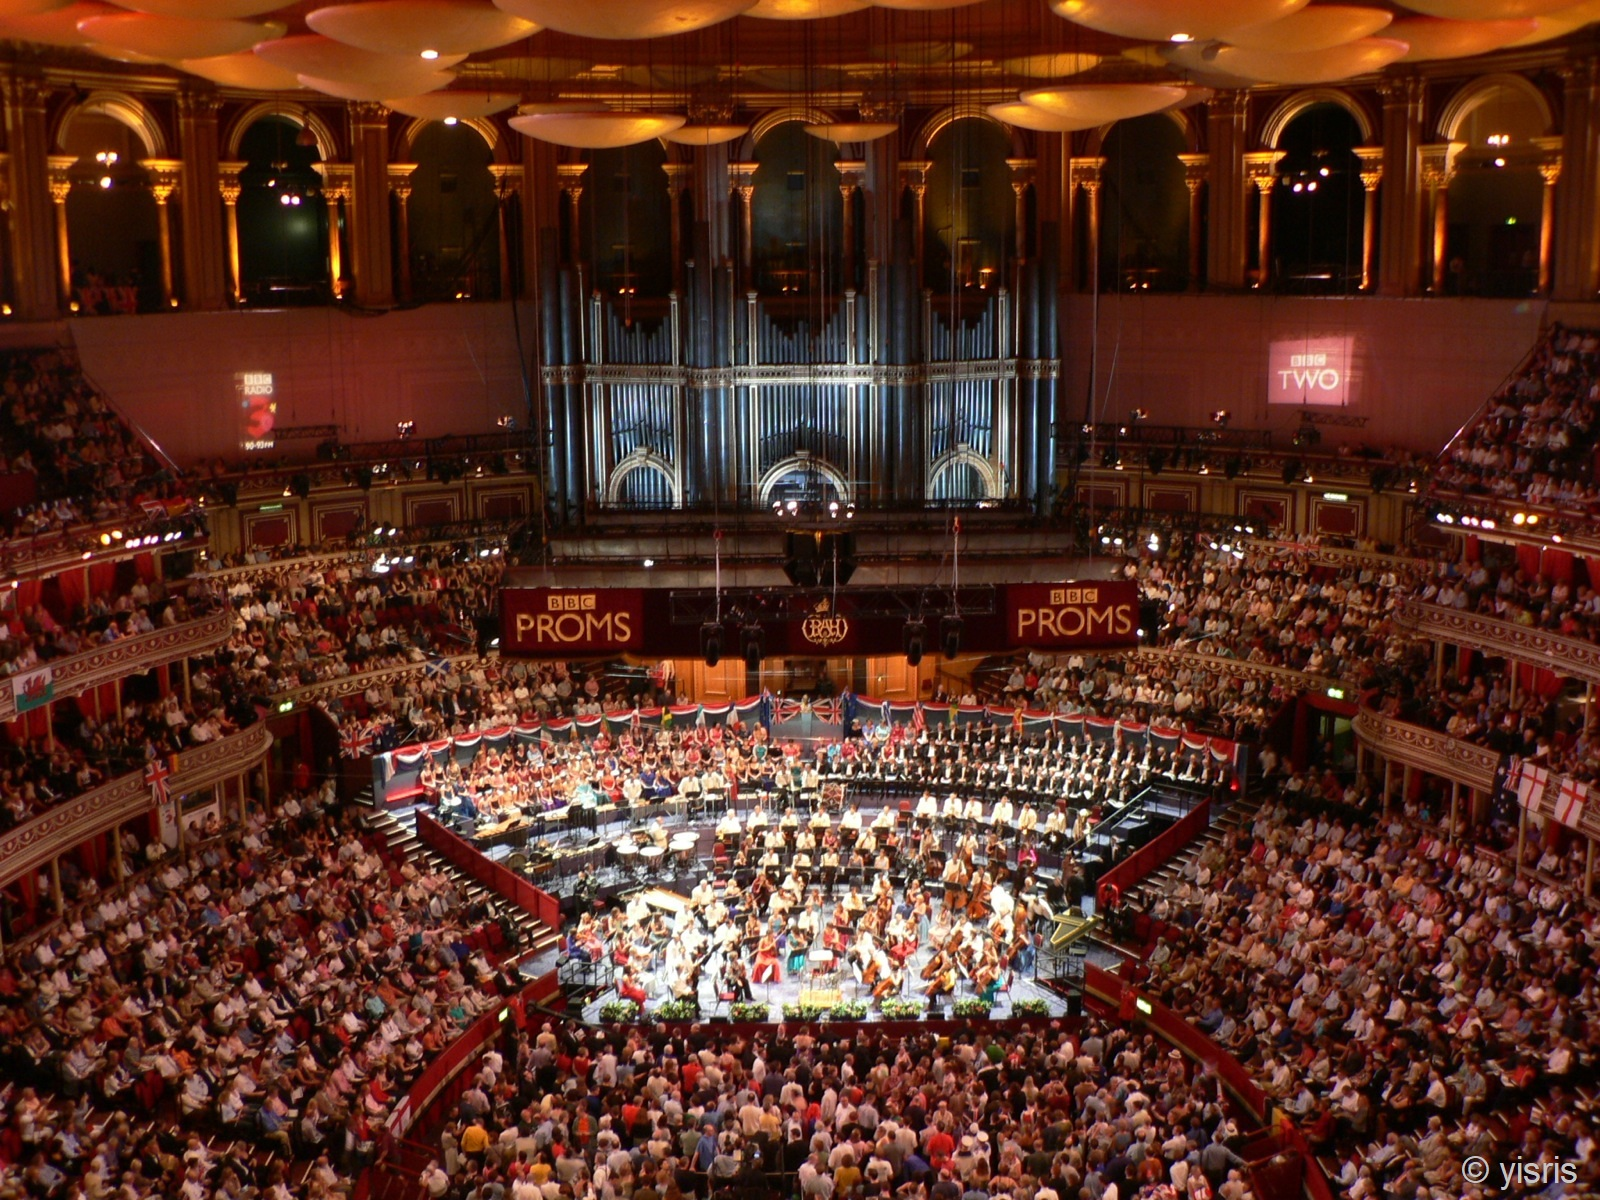 Last Night of the Proms 2019 - Royal Albert Hall, LondonSaturday 14 September 2019